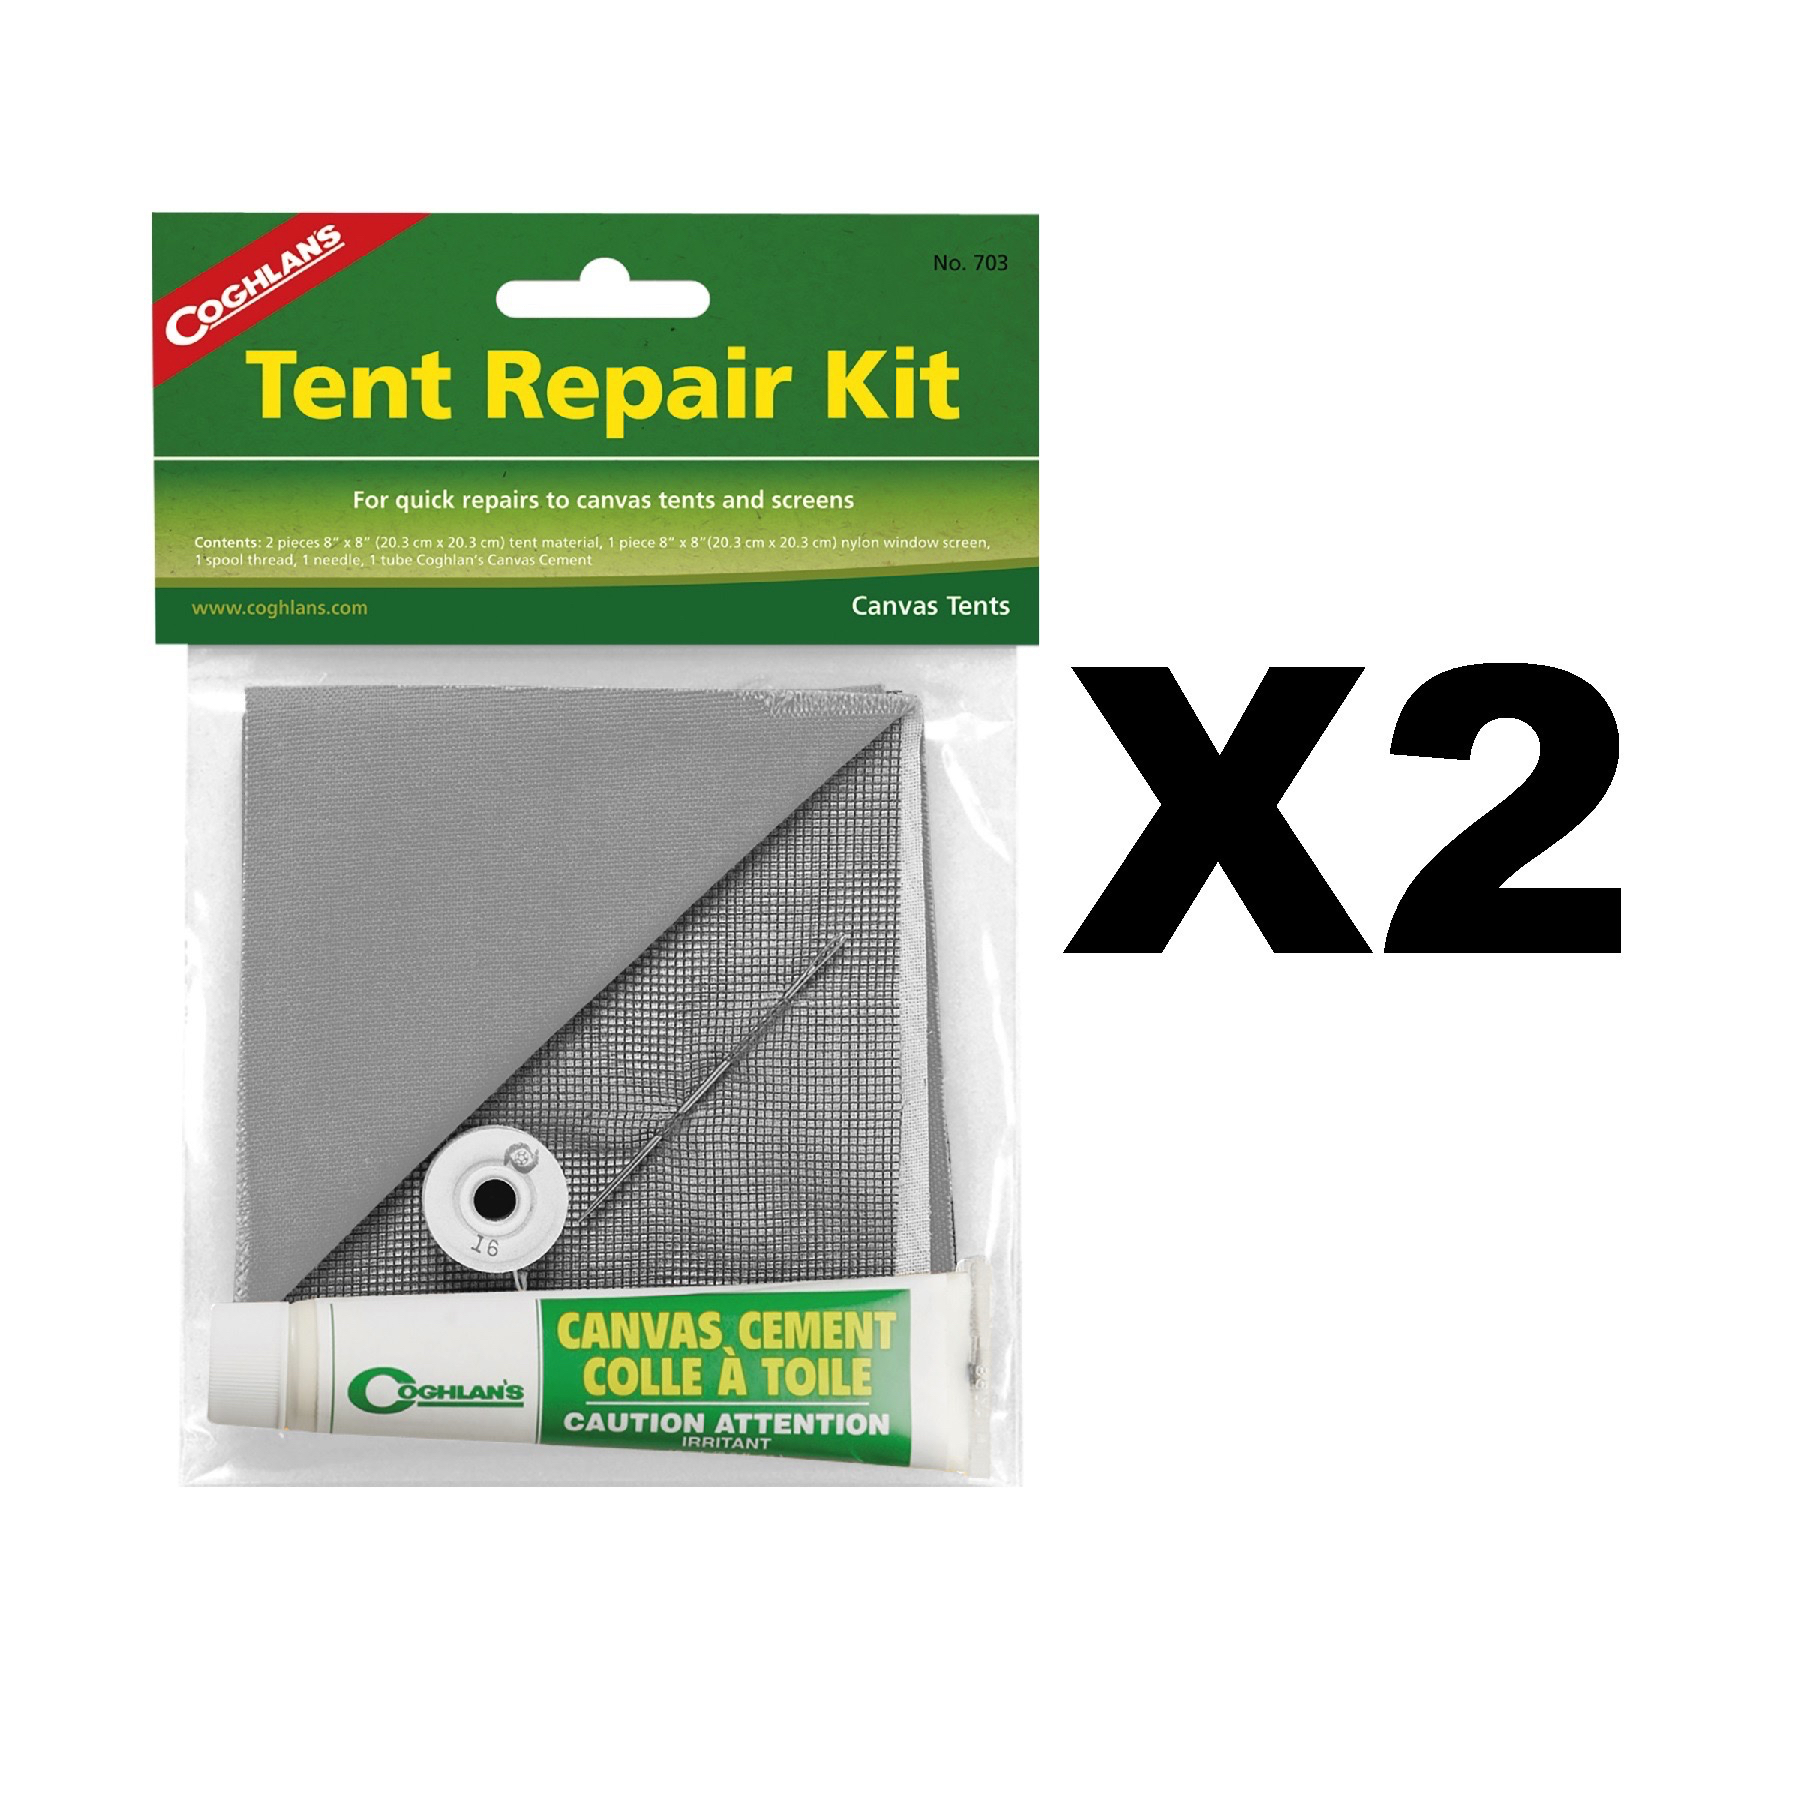 Availability In Stock - Ships in 1 business day  sc 1 st  eBay & Coghlanu0027s Tent Repair Kit for Canvas w/ Cement Patches Nylon ...